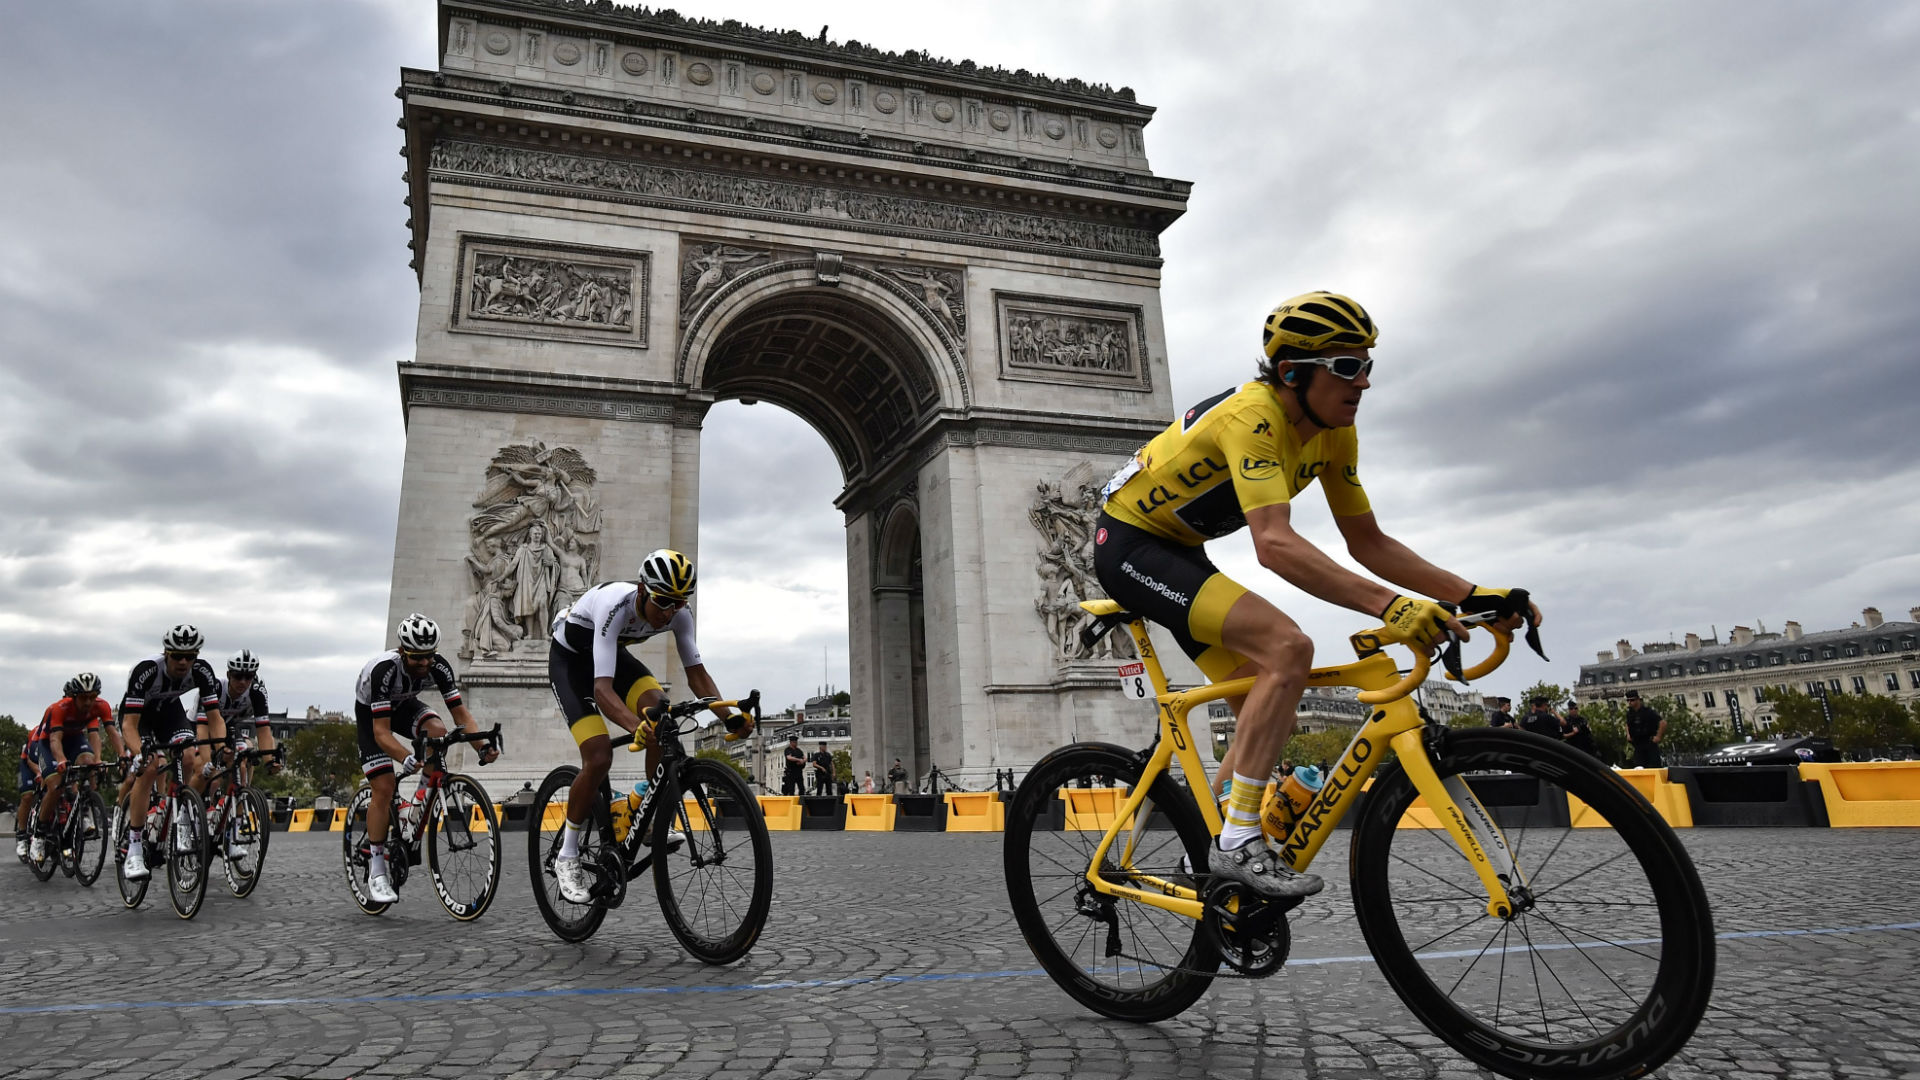 Tour De France 2020 Standings.Tour De France Standings 2019 Winners For Each Stage